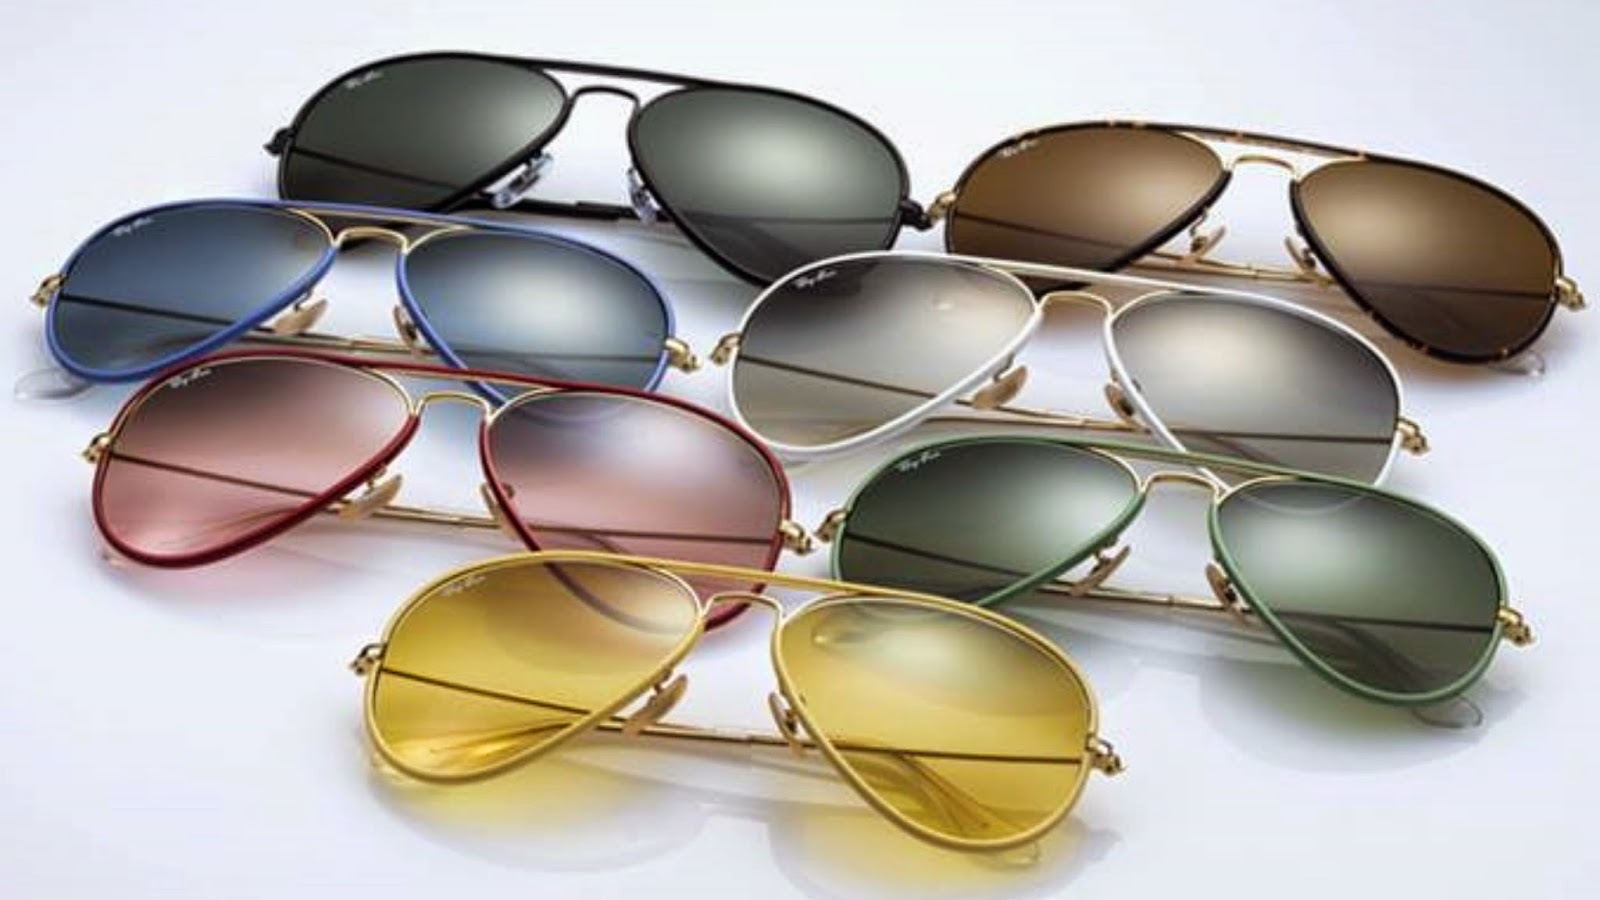 Ray Ban Aviator Full Color RB3025JM 太陽眼鏡